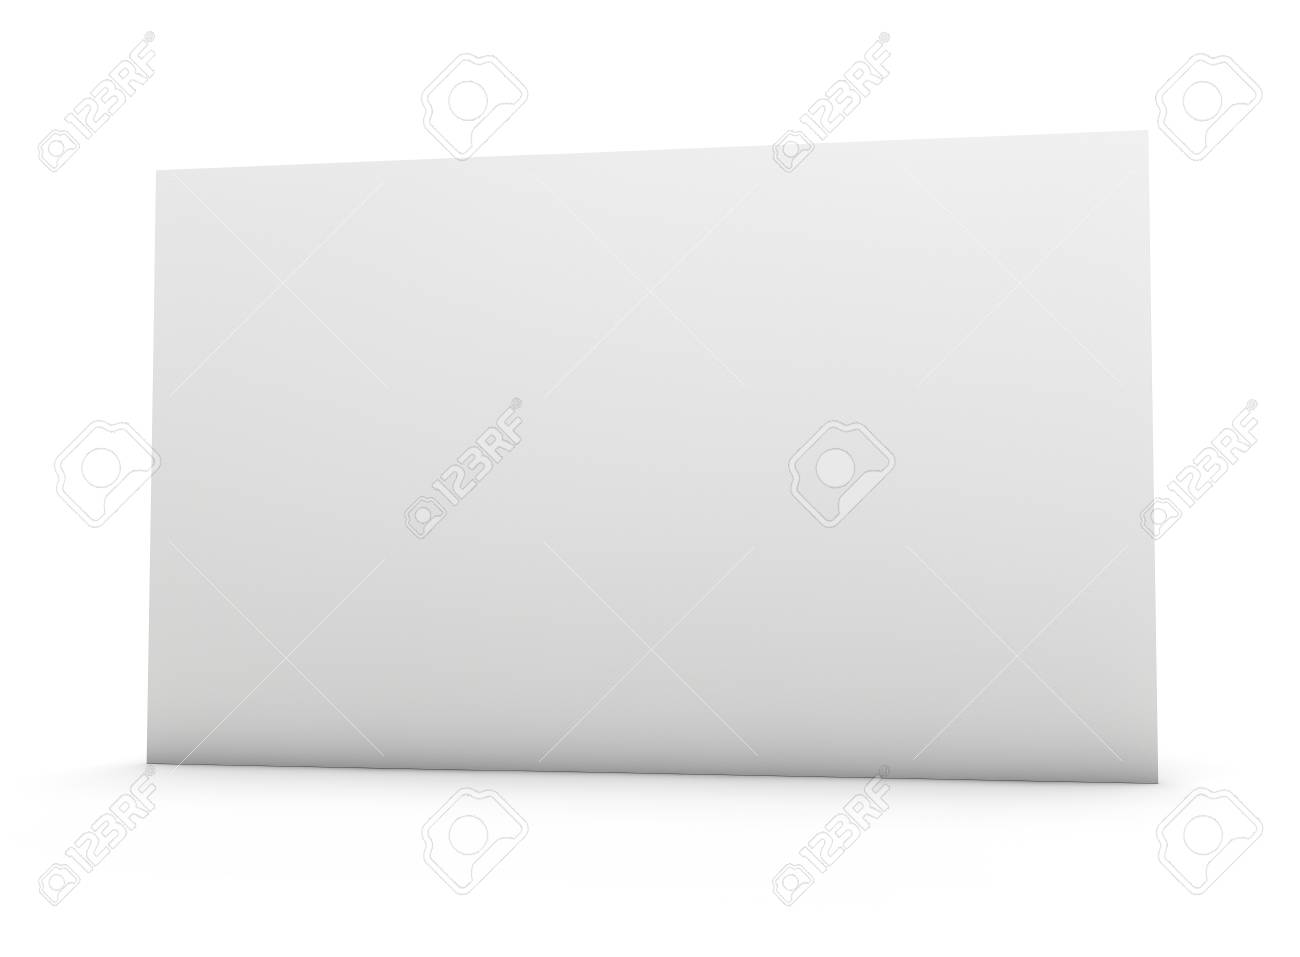 Blank Business Card With Fine Paper Texture. Clipping Path Included ...